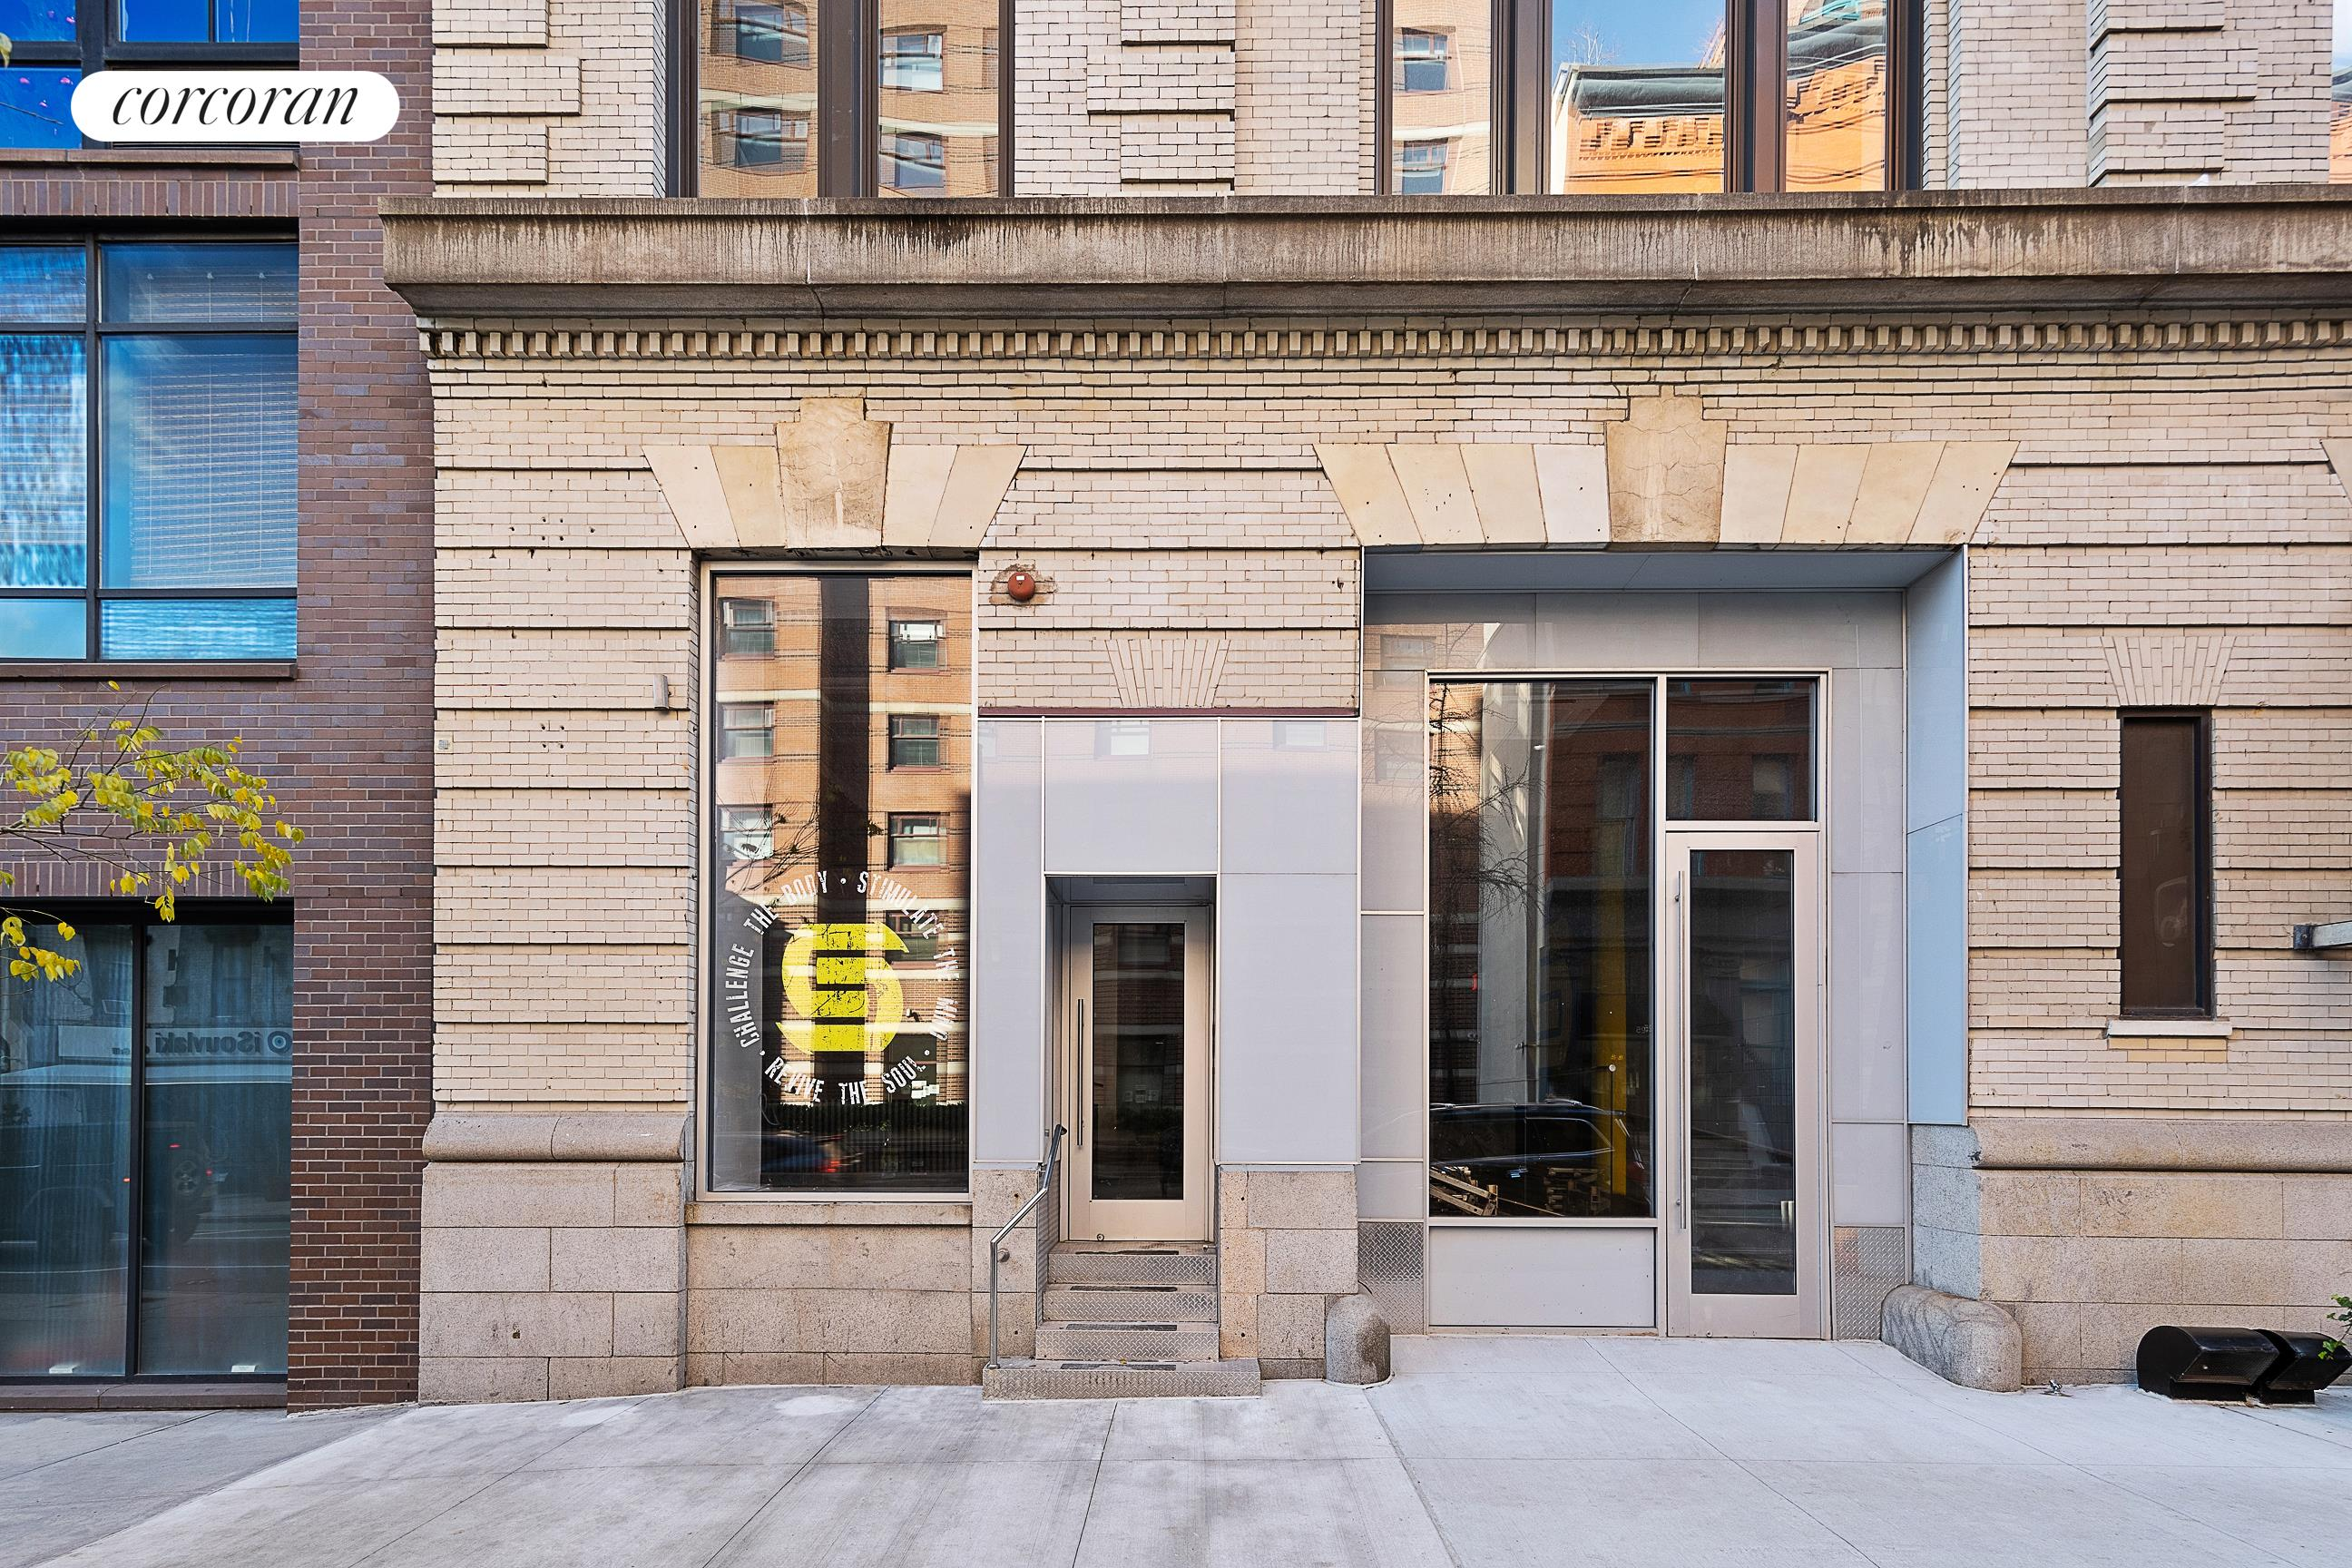 Apartment for sale at 130 East 12th Street, Apt COMM